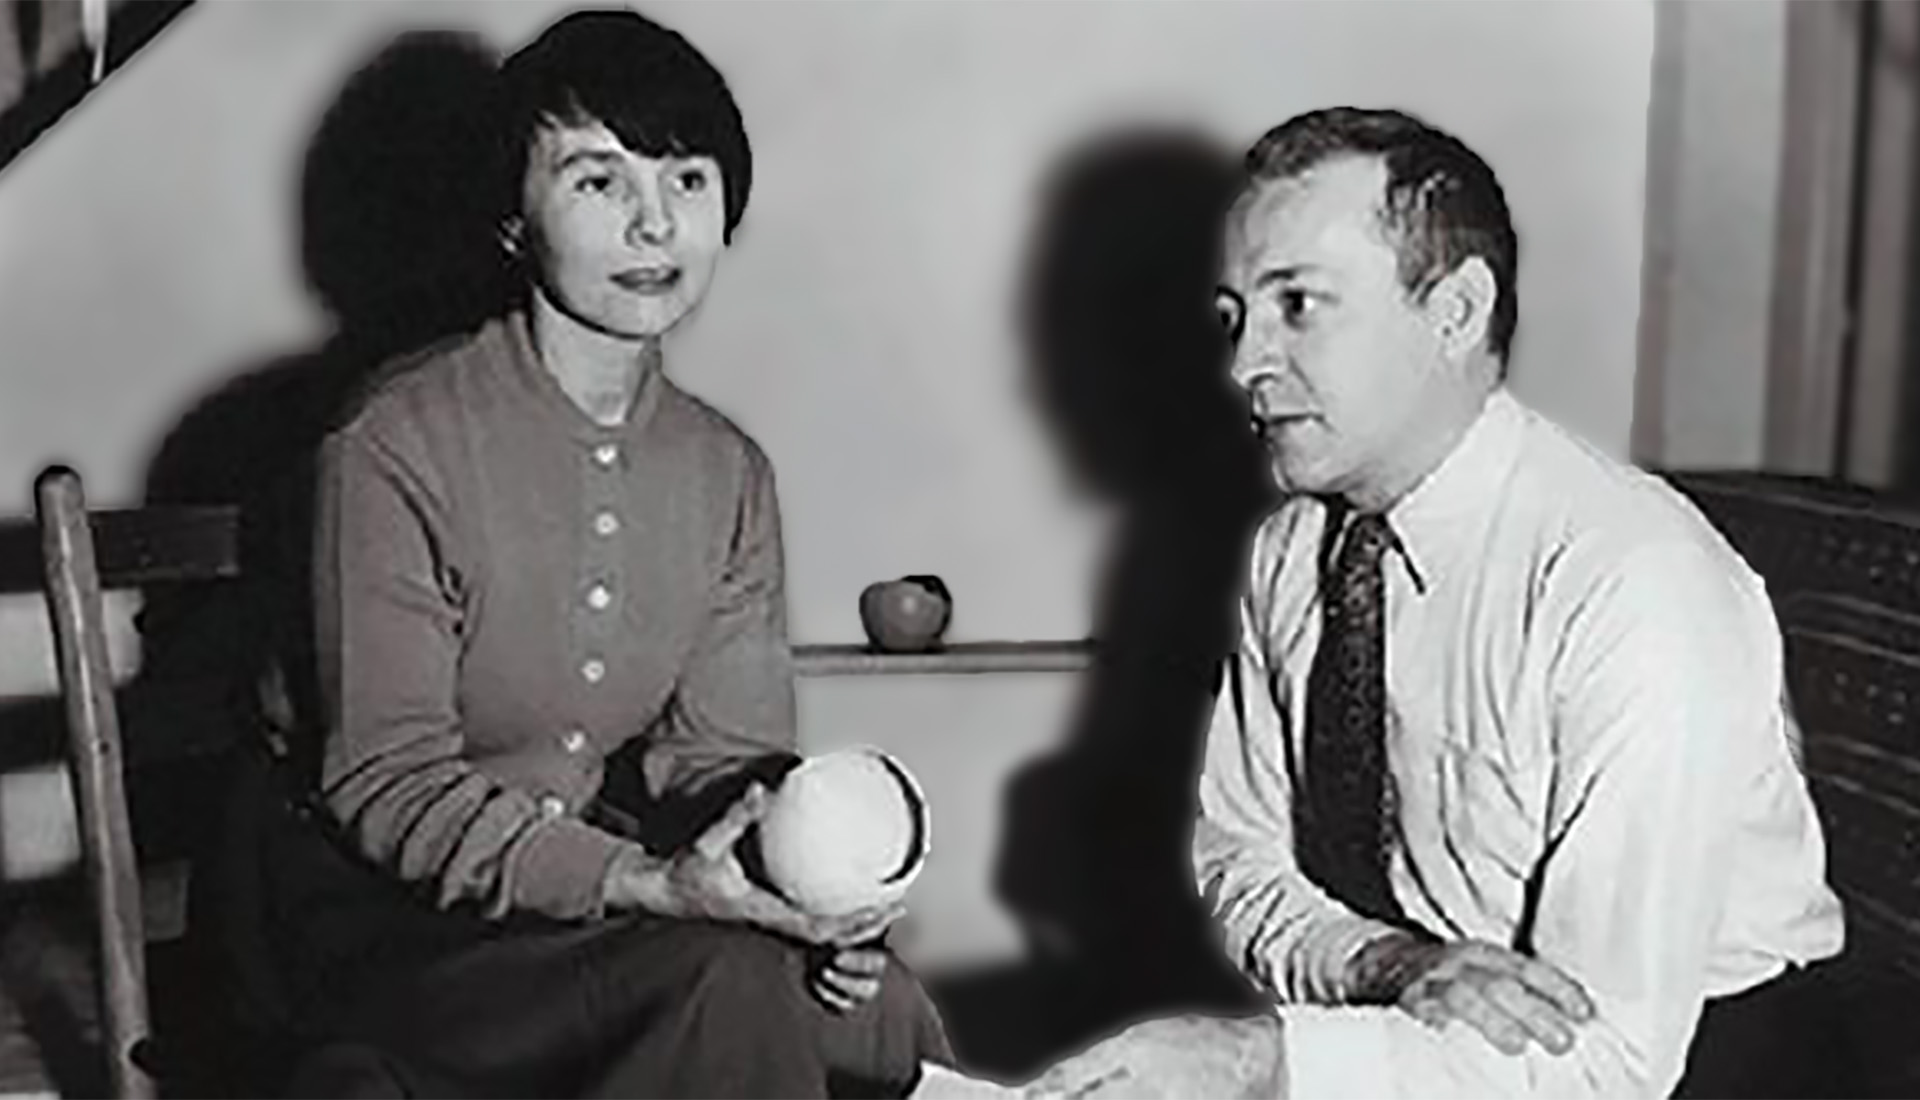 Weston and Brenda Andersen holding prototypes for their first line in their Ohio home in 1951